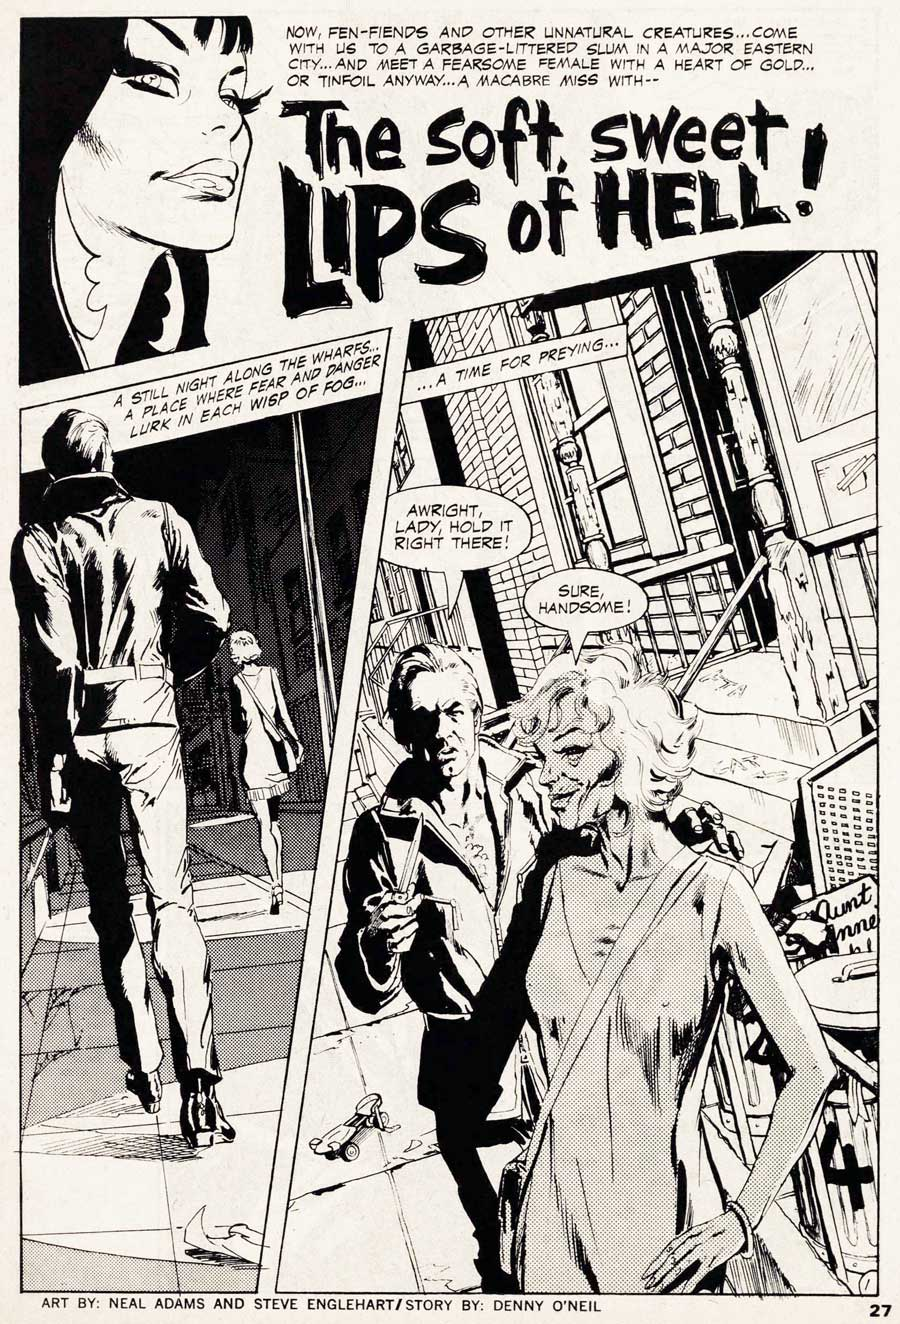 """The Soft, Sweet Lips of Hell"" from VAMPIRELLA #10 by Denny O'Neil and Neal Adams"